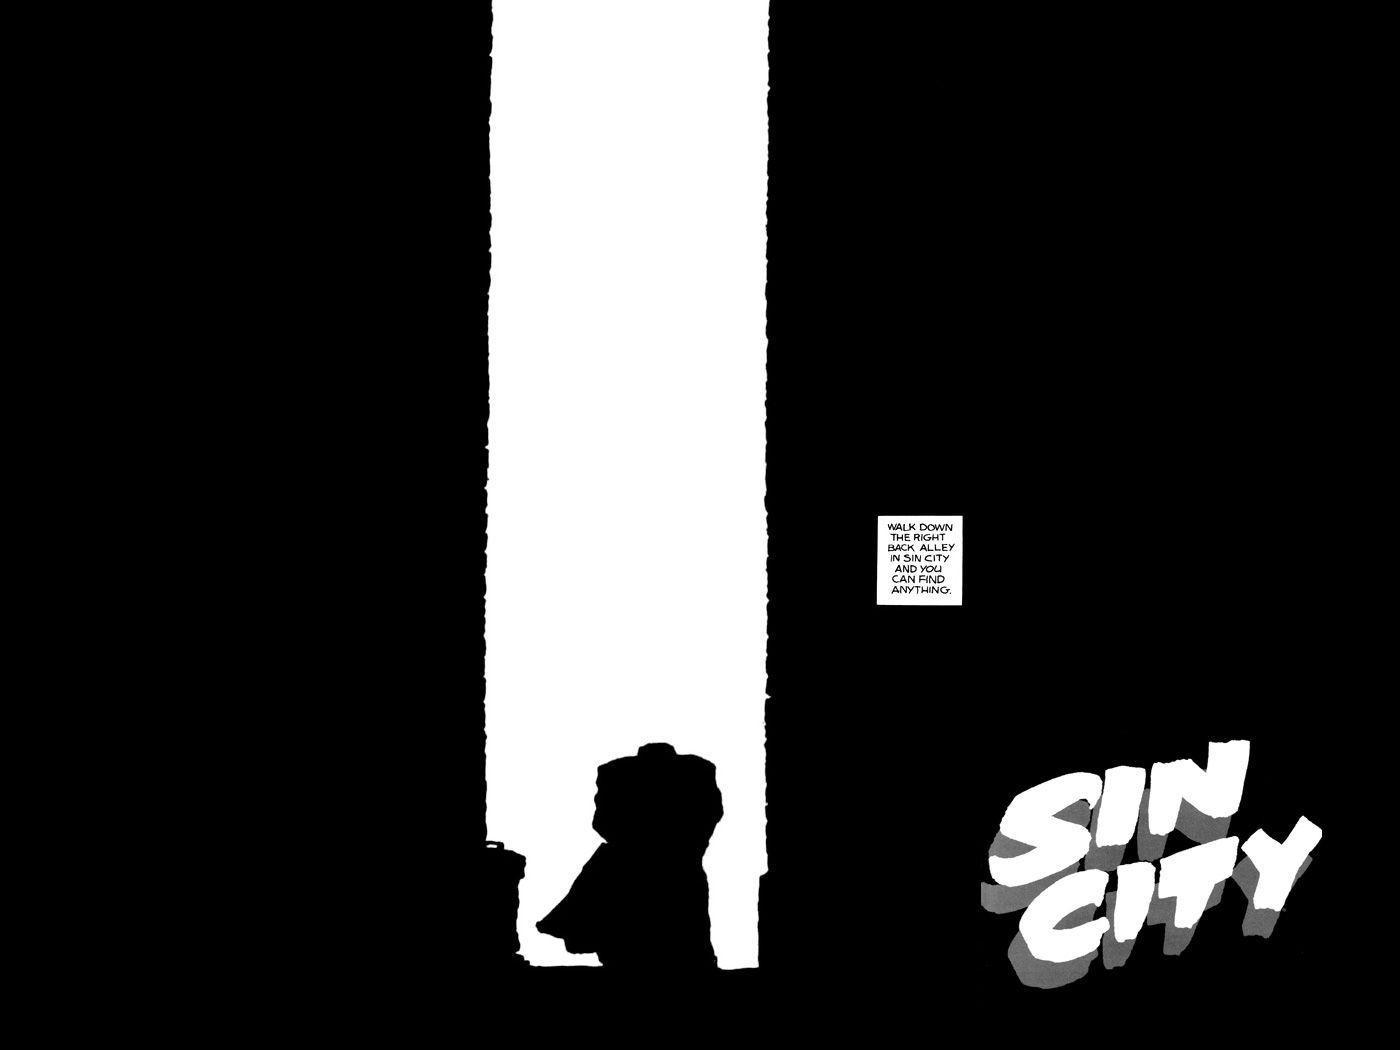 Wallpapers For > Sin City Wallpaper Widescreen